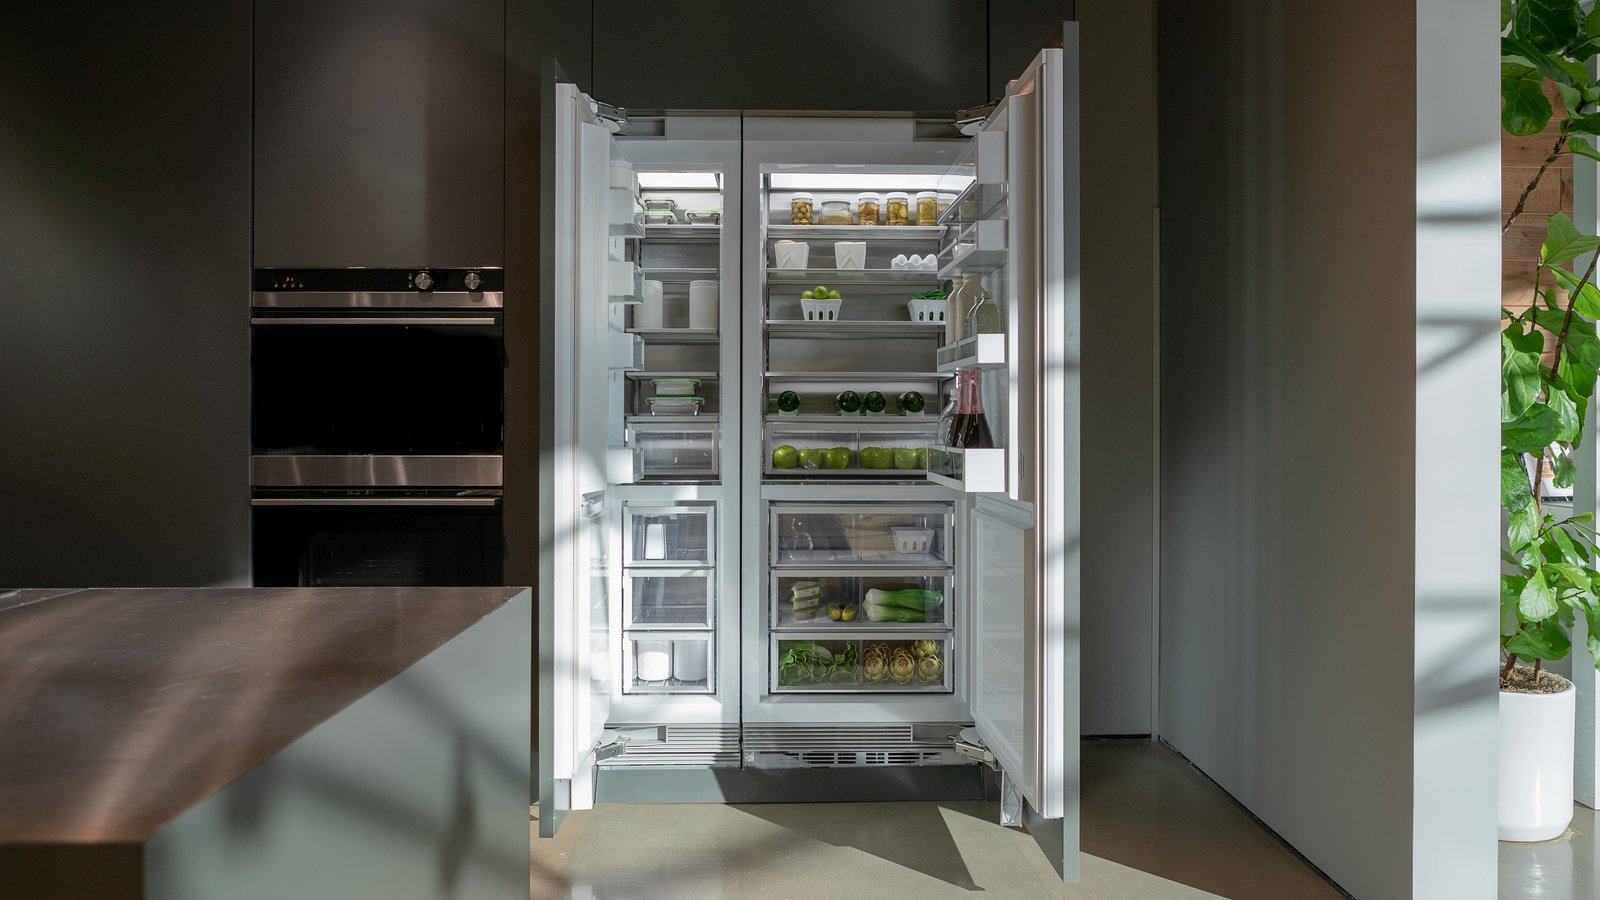 This Sleek Smart Fridge Is Revolutionizing Food Storage